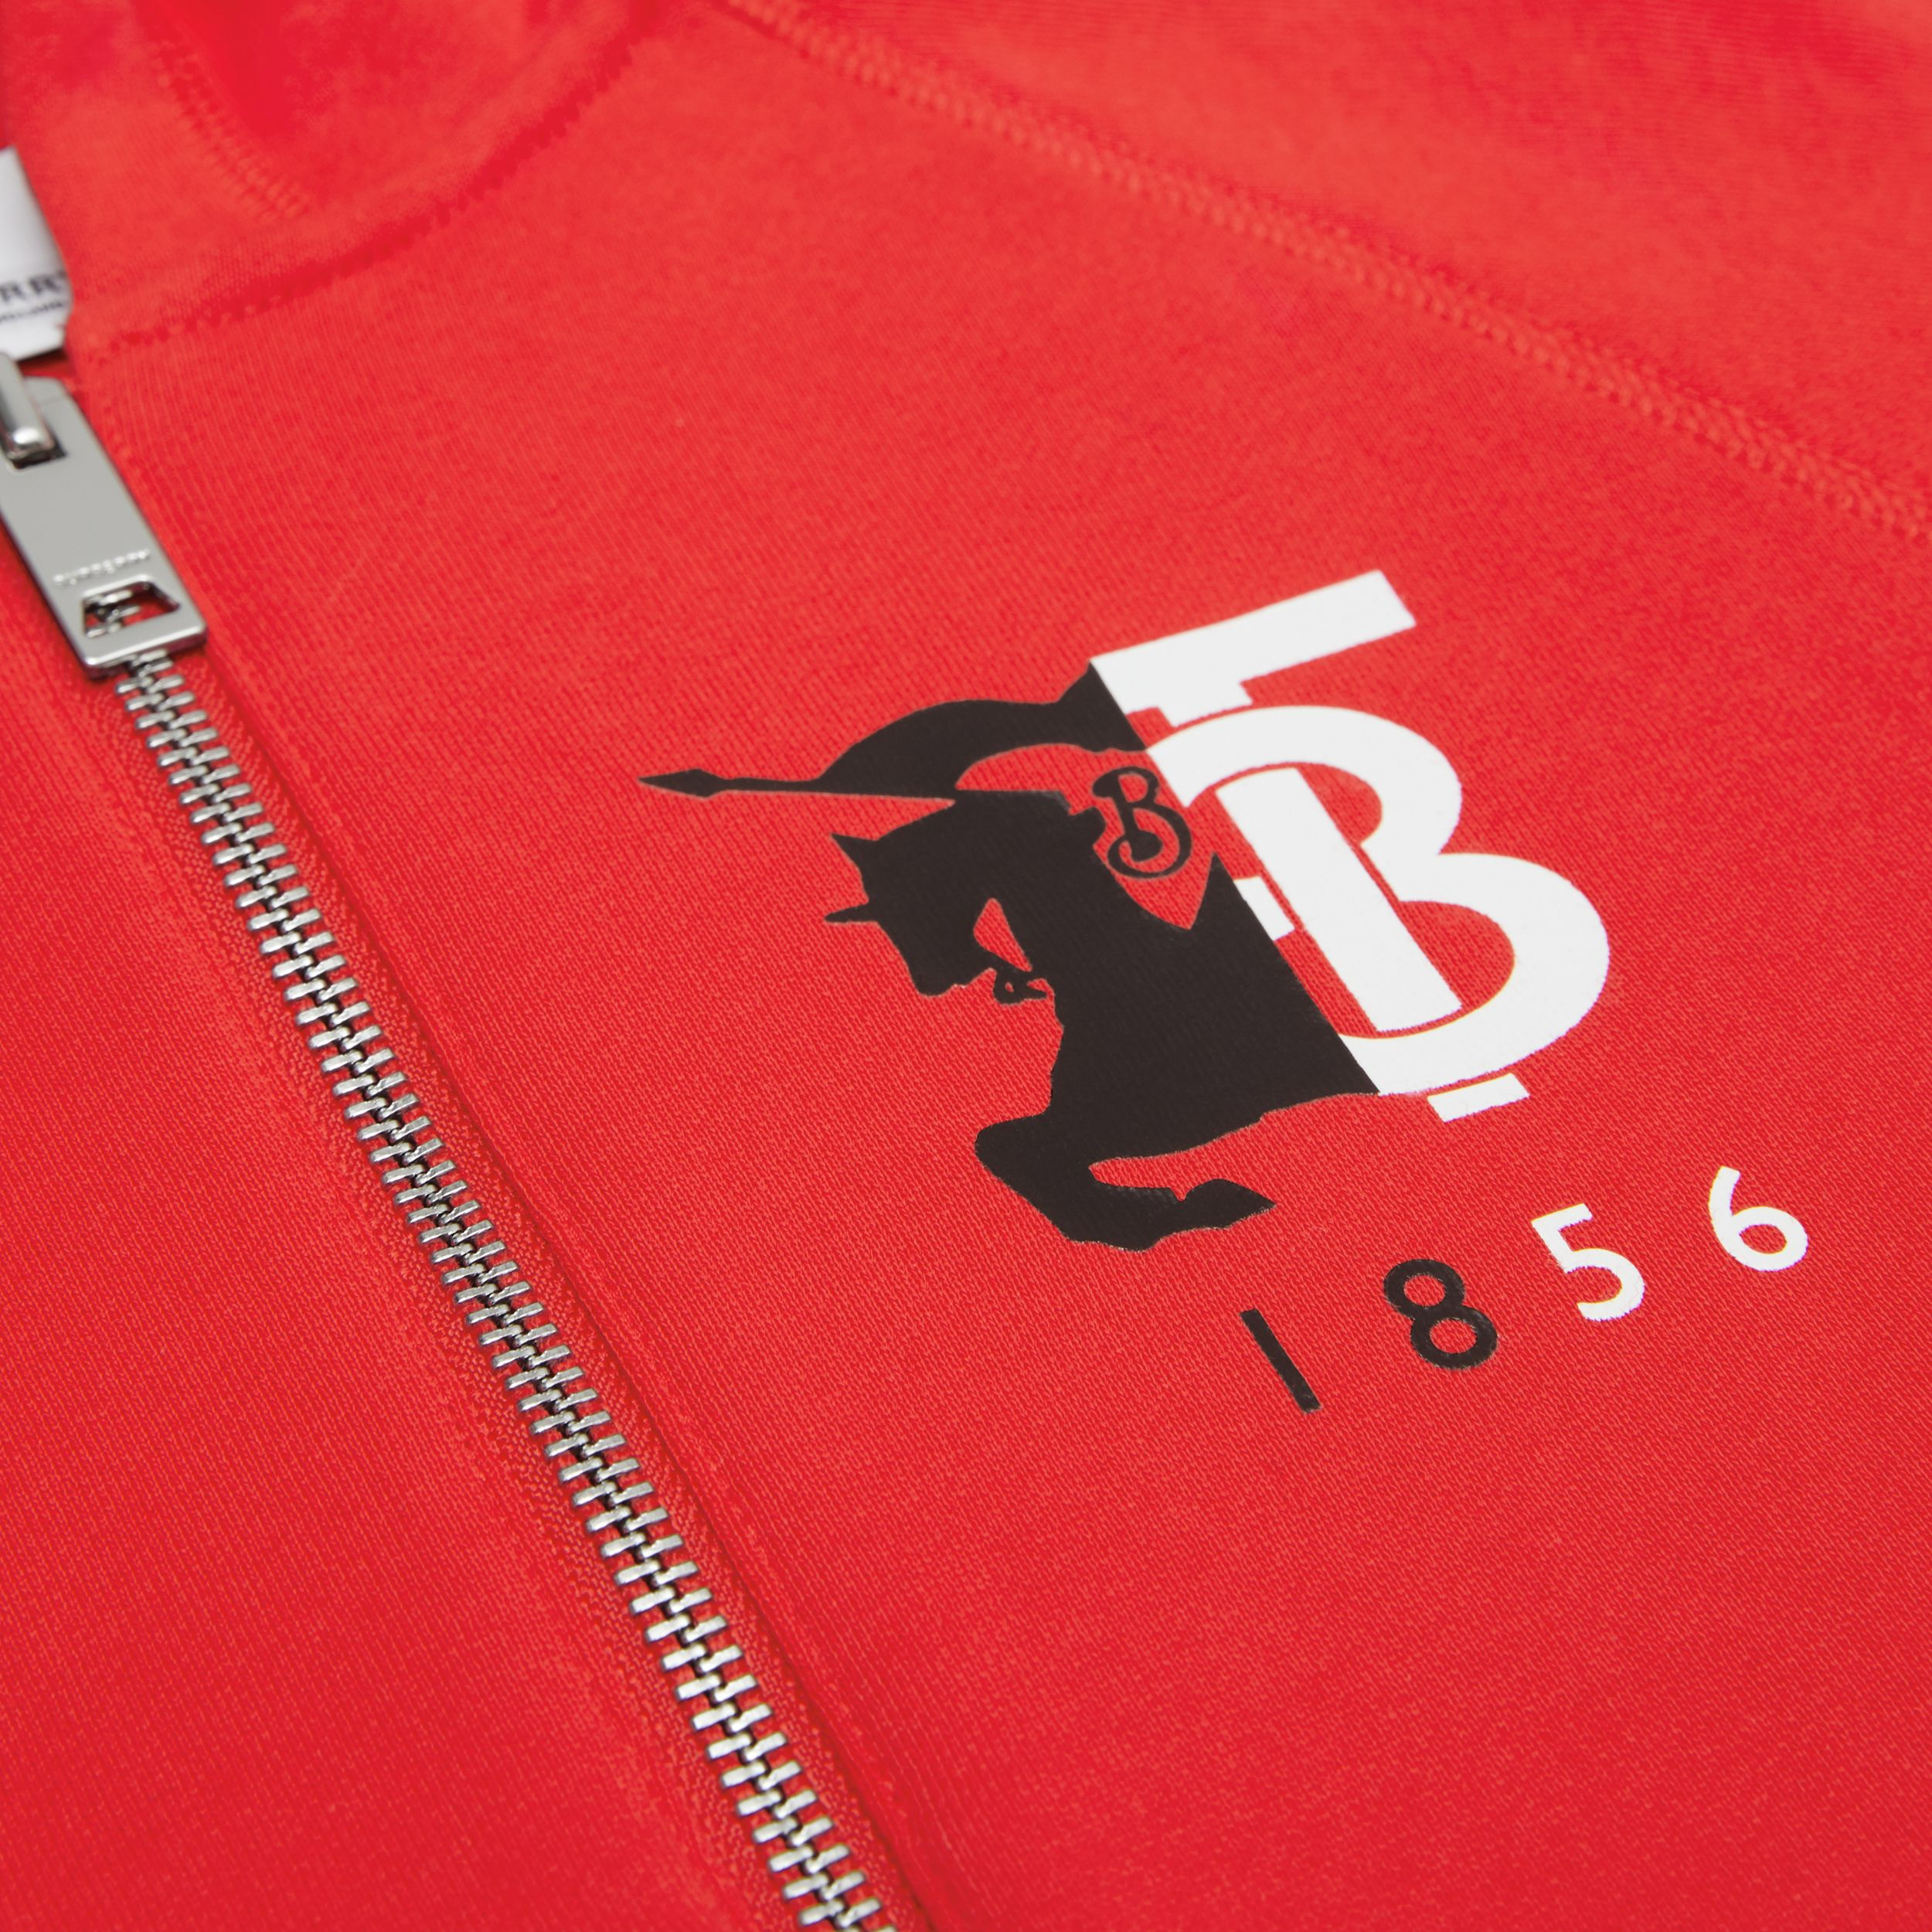 Contrast Logo Graphic Cotton Hooded Top in Bright Red | Burberry - 2